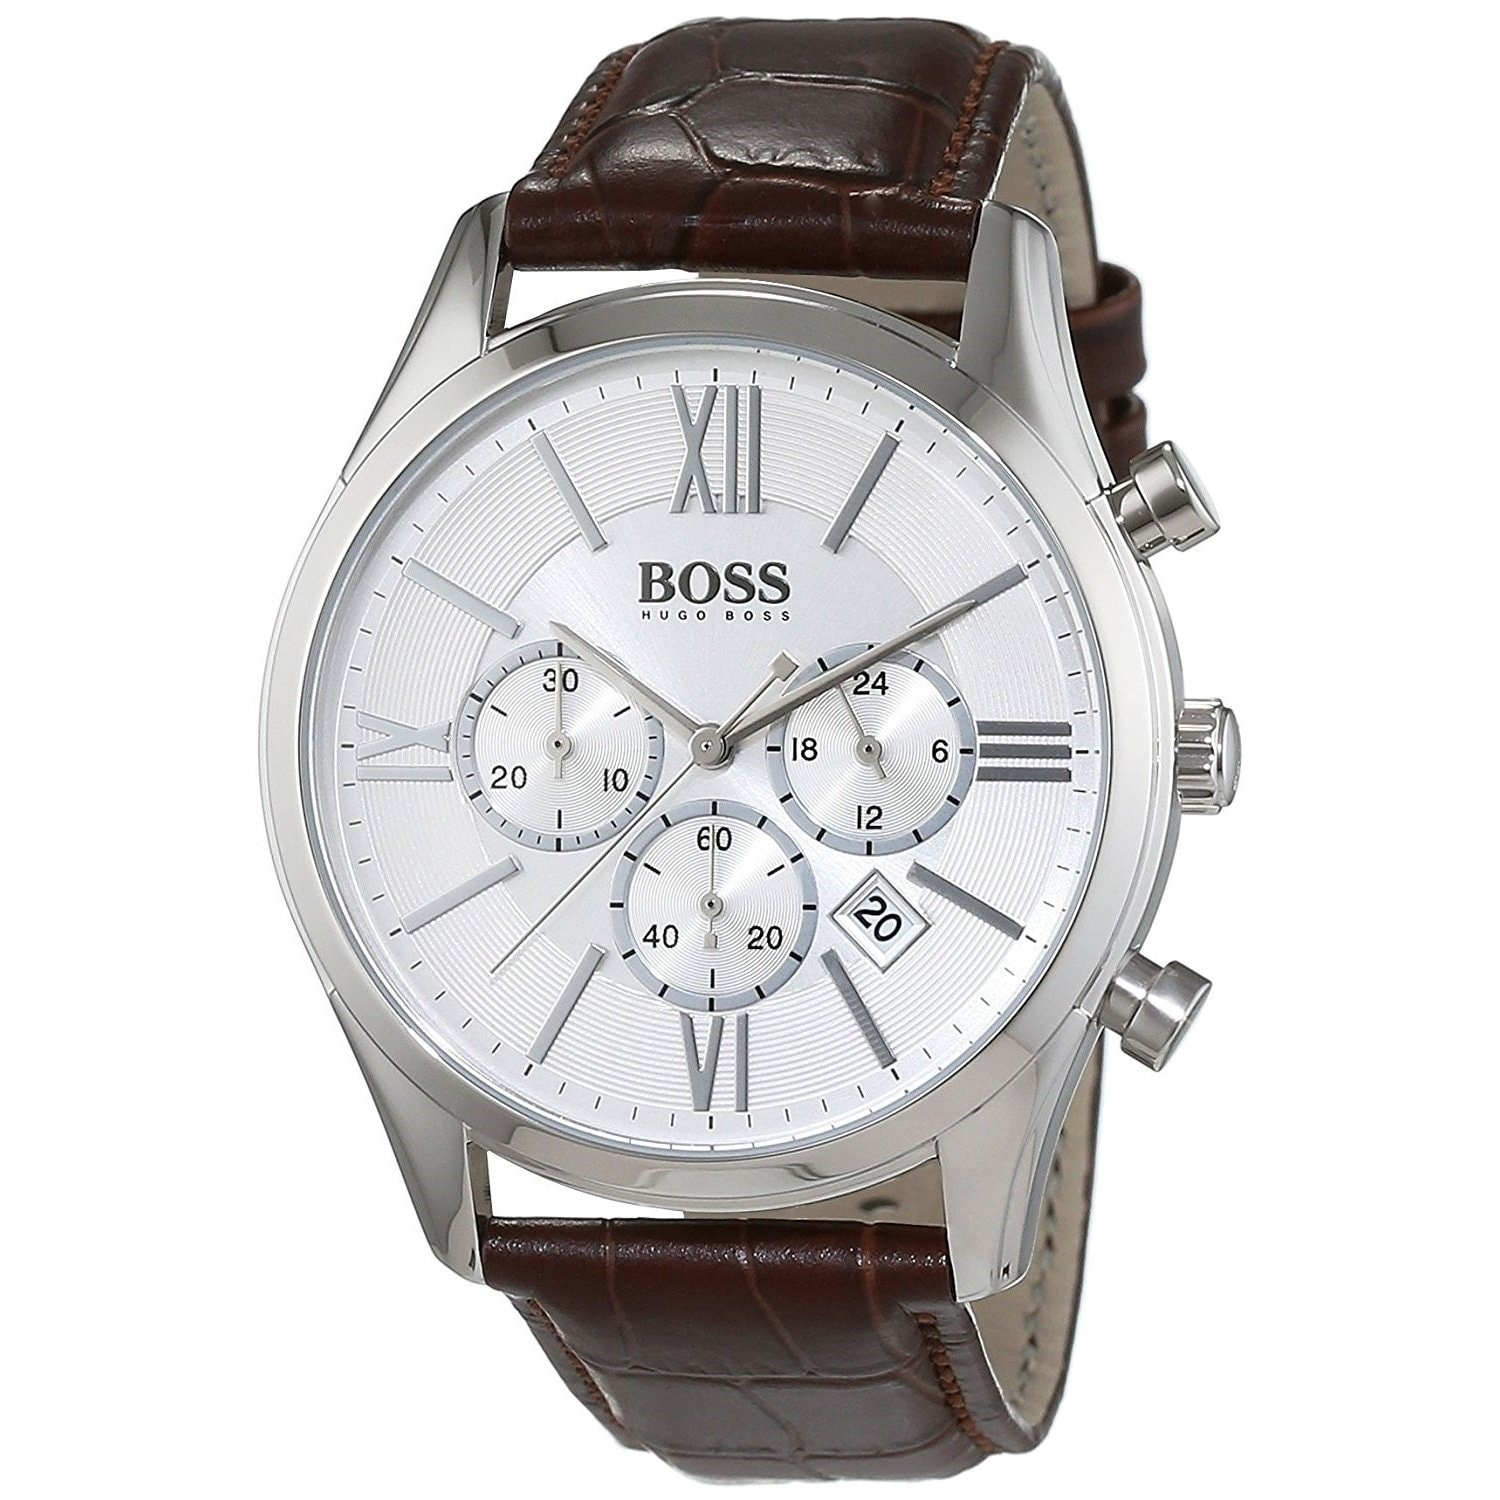 c59ae1d6ed96 Shop Hugo Boss Men's 1513195 'Ambassador' Chronograph Brown Leather Watch -  Free Shipping Today - Overstock - 20904329